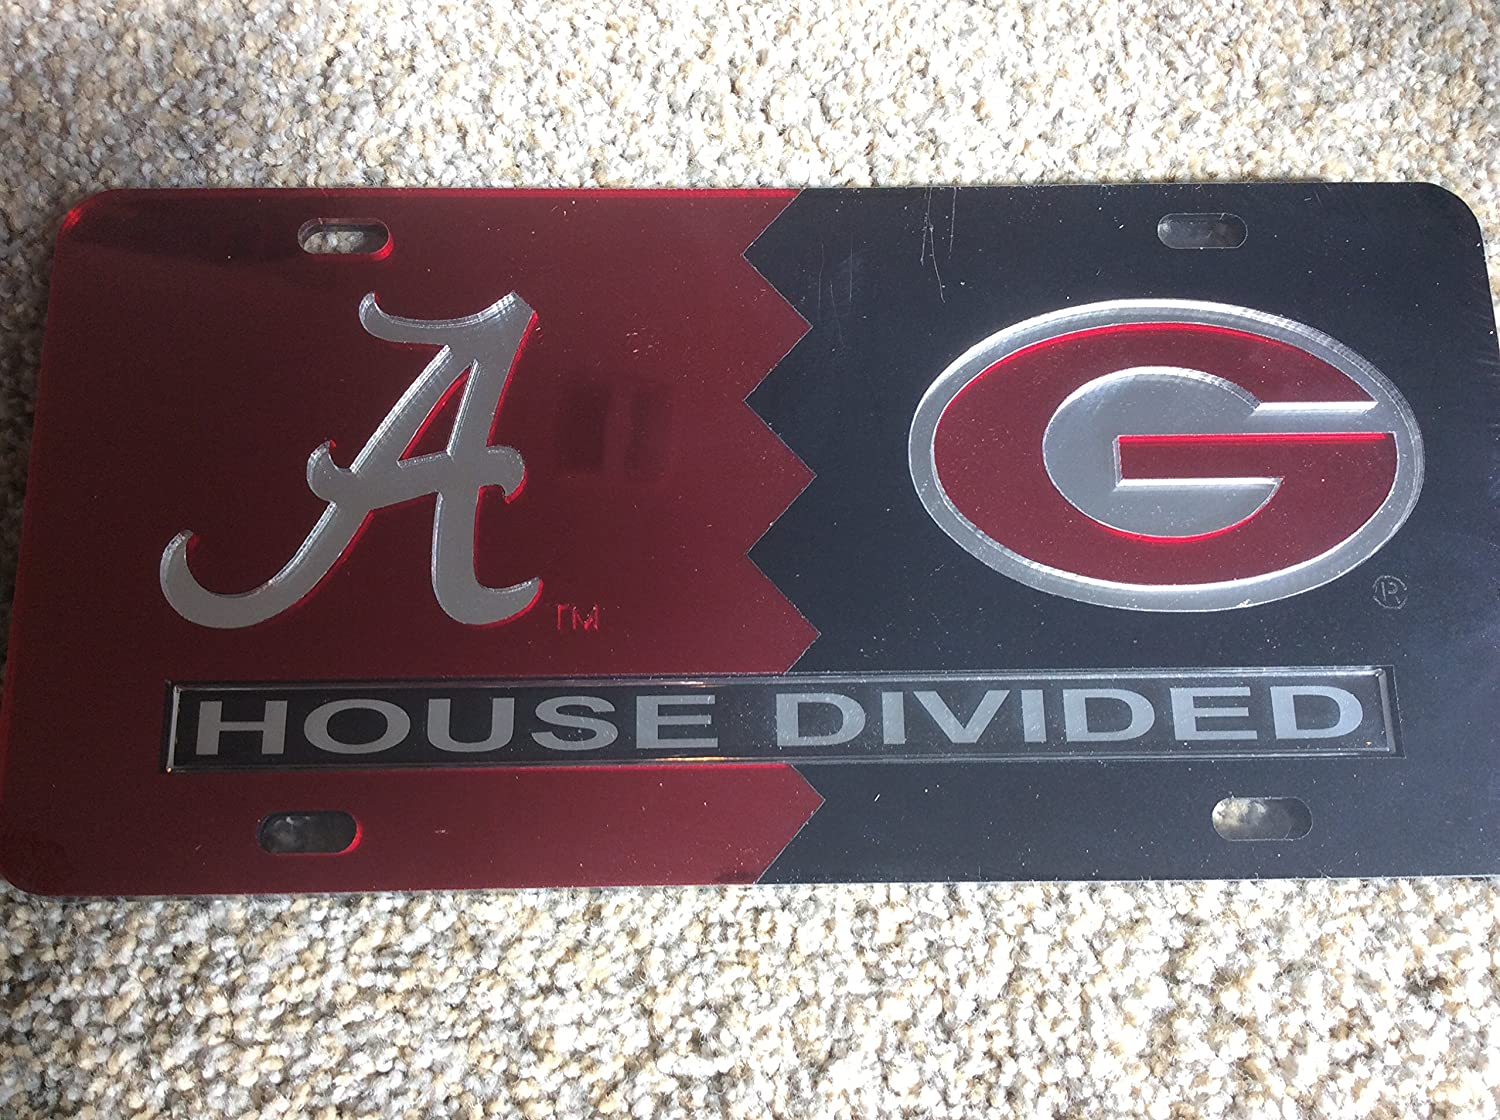 University of Alabama University of Georgia House Divided Laser Cut License Plate Tag